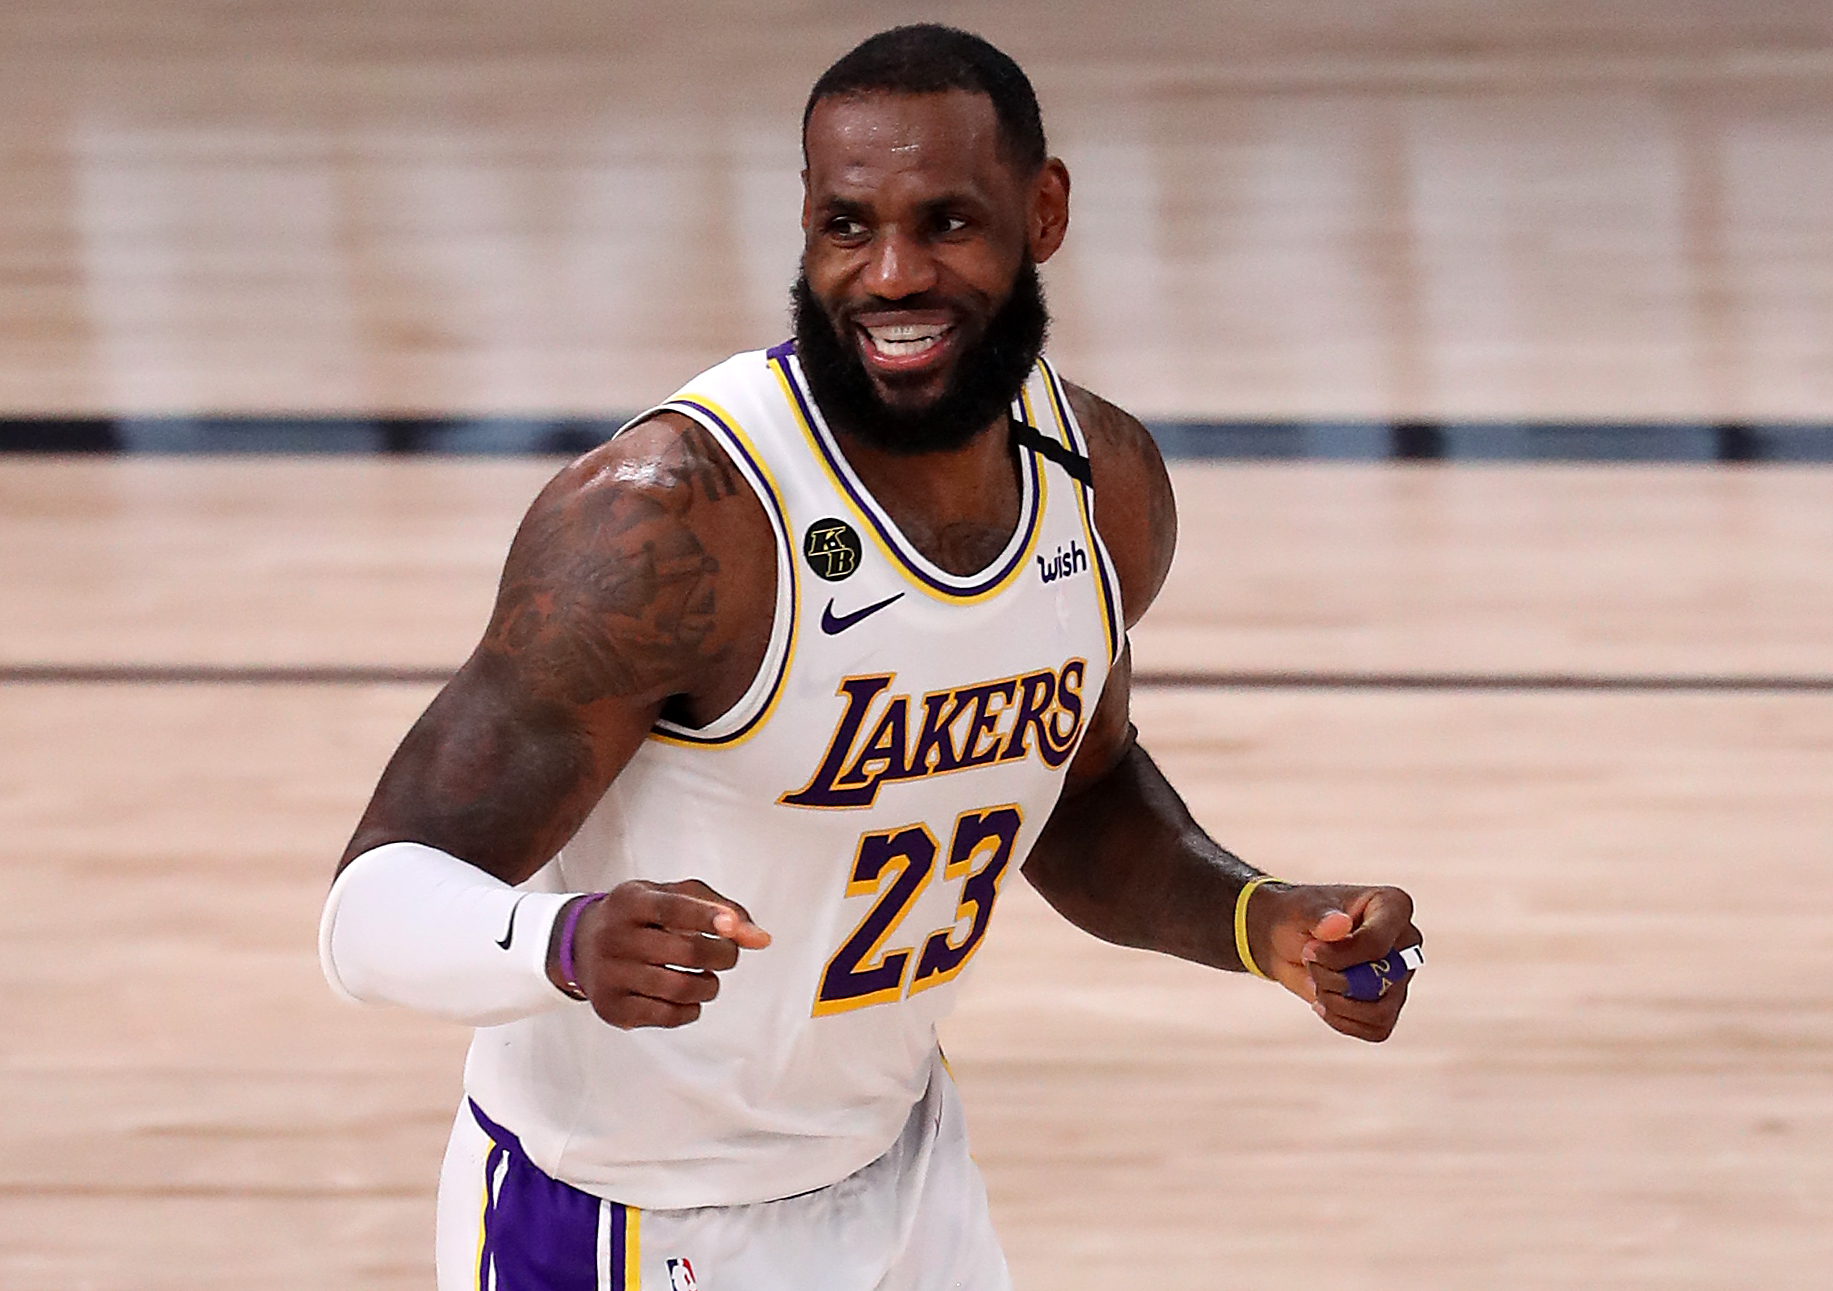 LeBron James sets records with 16th All-NBA team selection